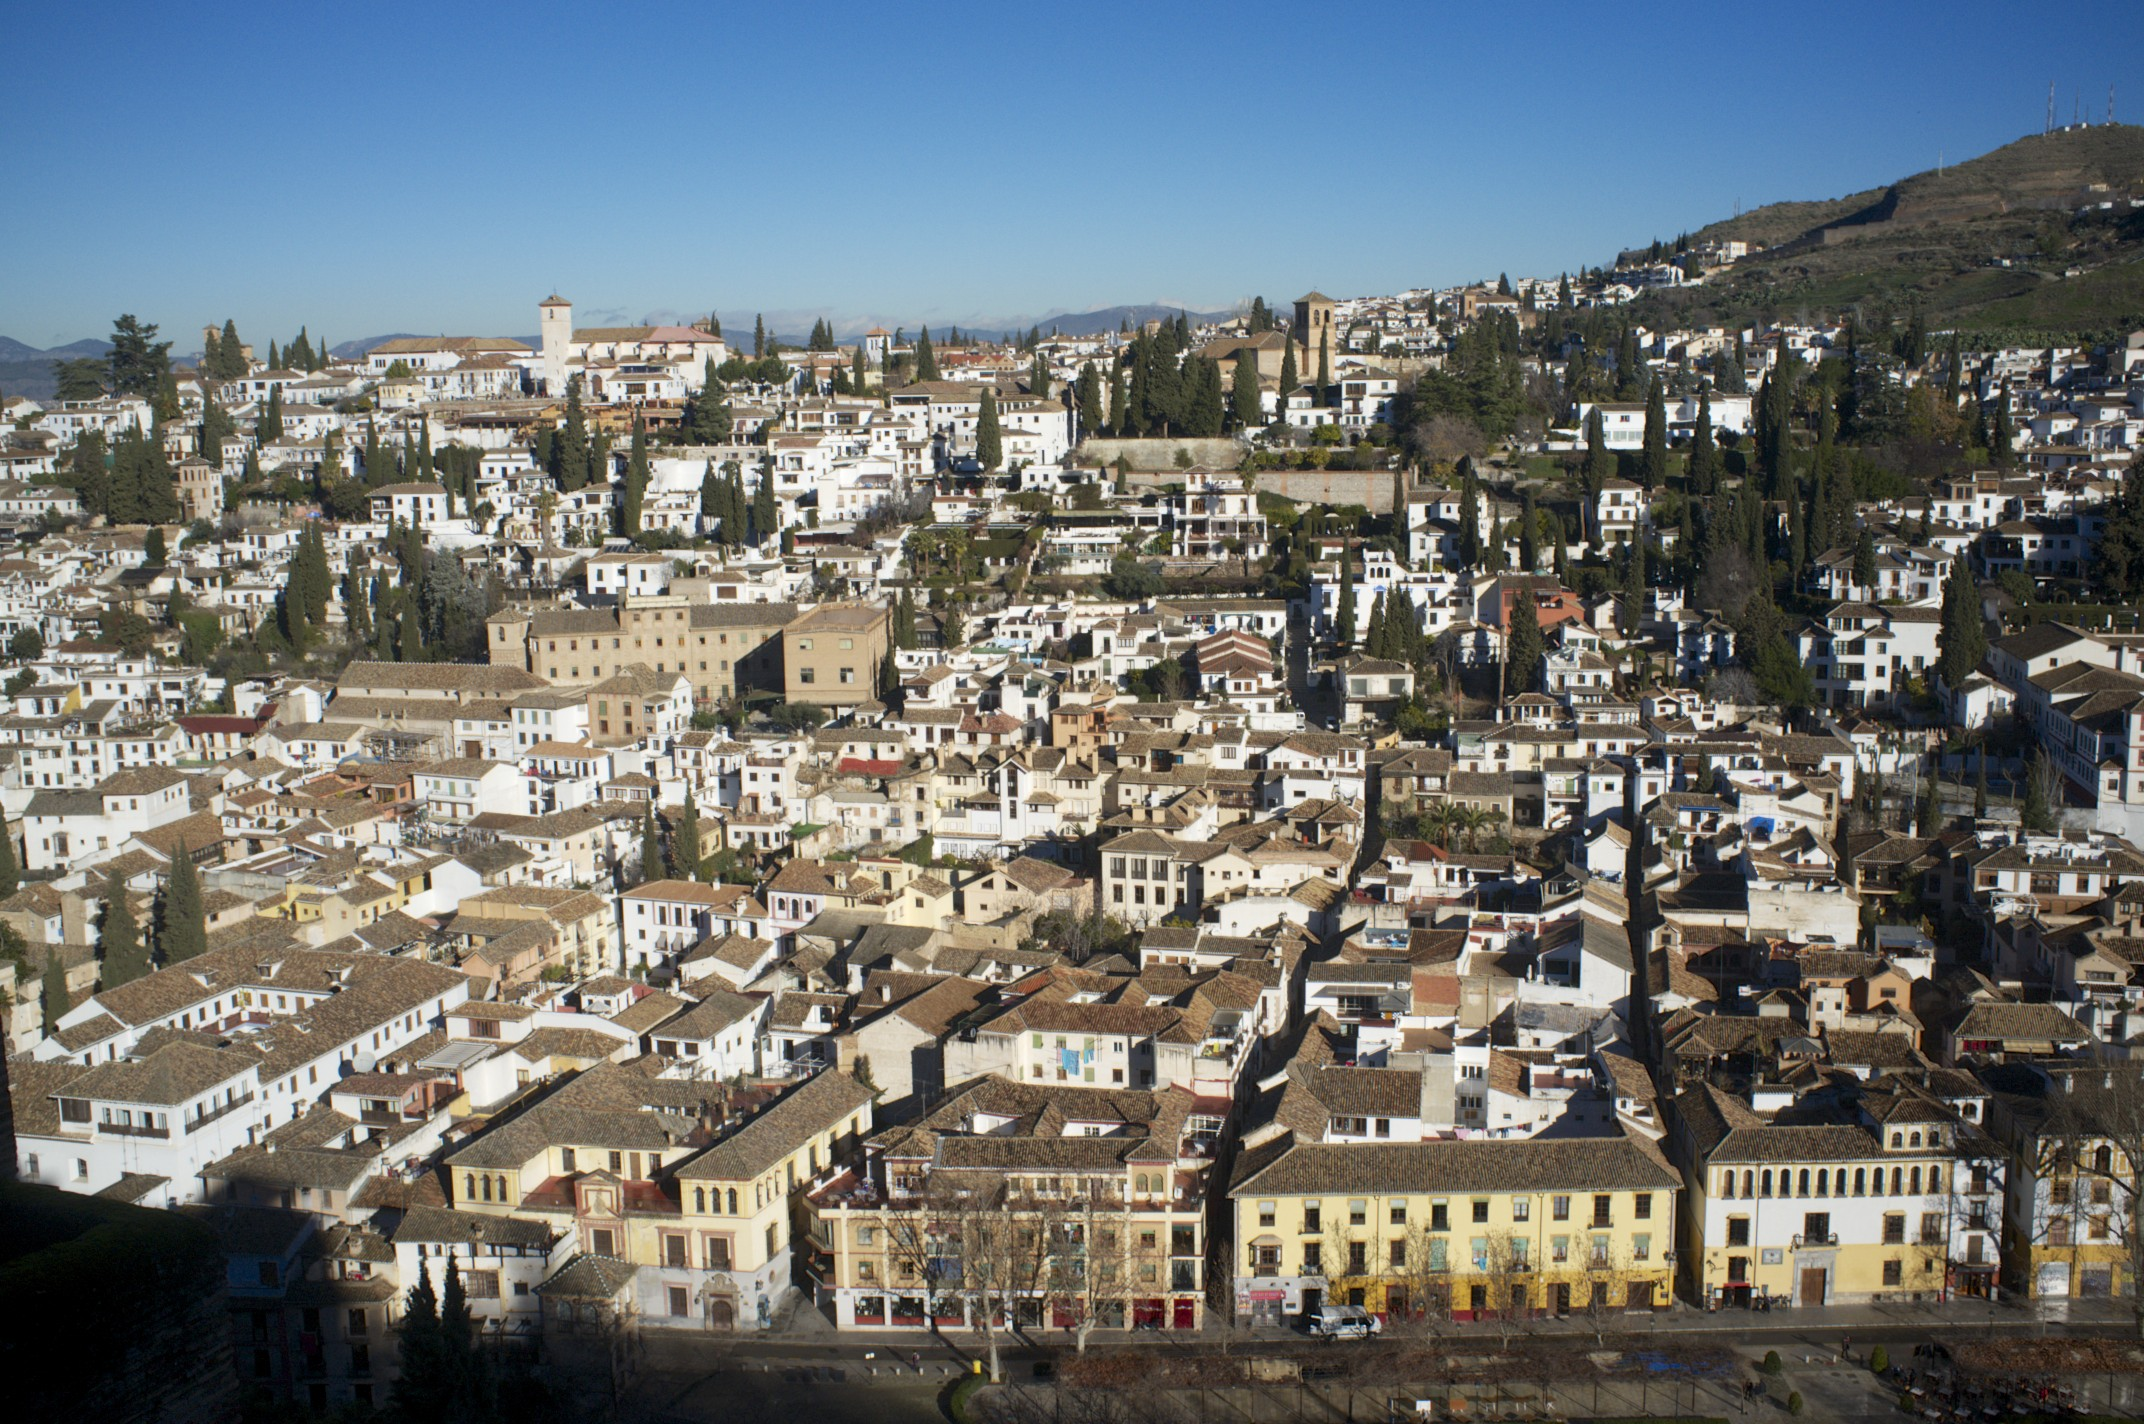 View on Granada from Alhambra (as seen on the 5th of February, 2014)